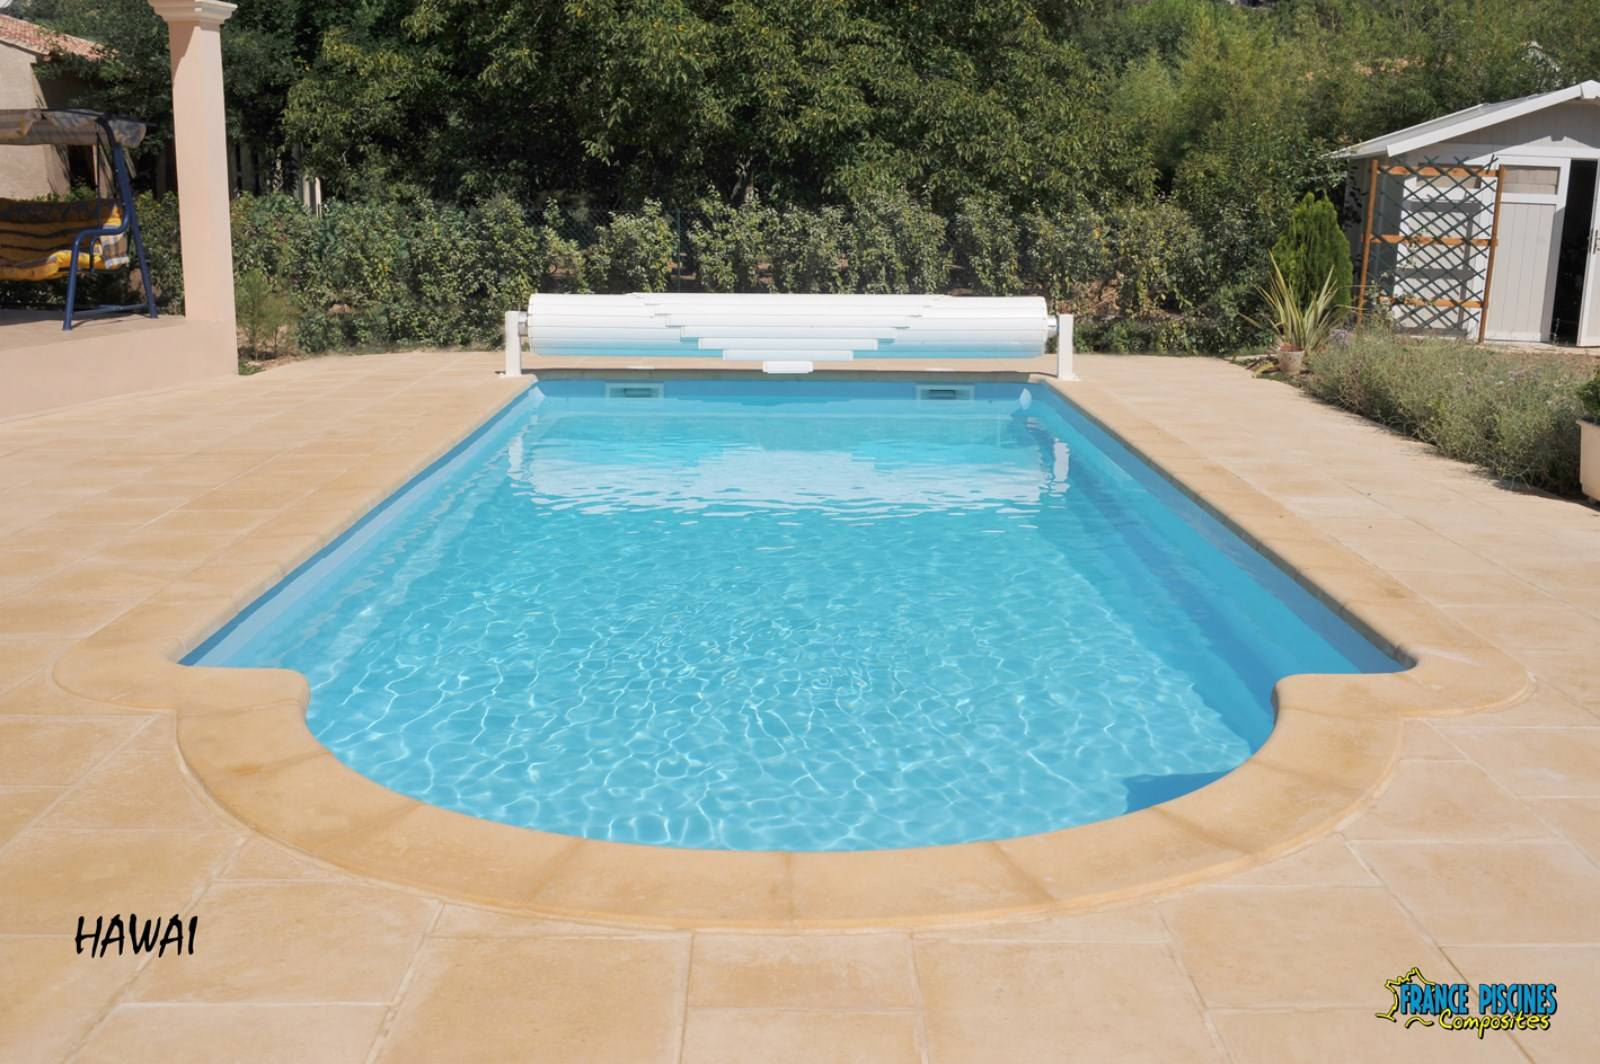 Vente et pose de piscine enterr e coque polyester for Piscine polyester